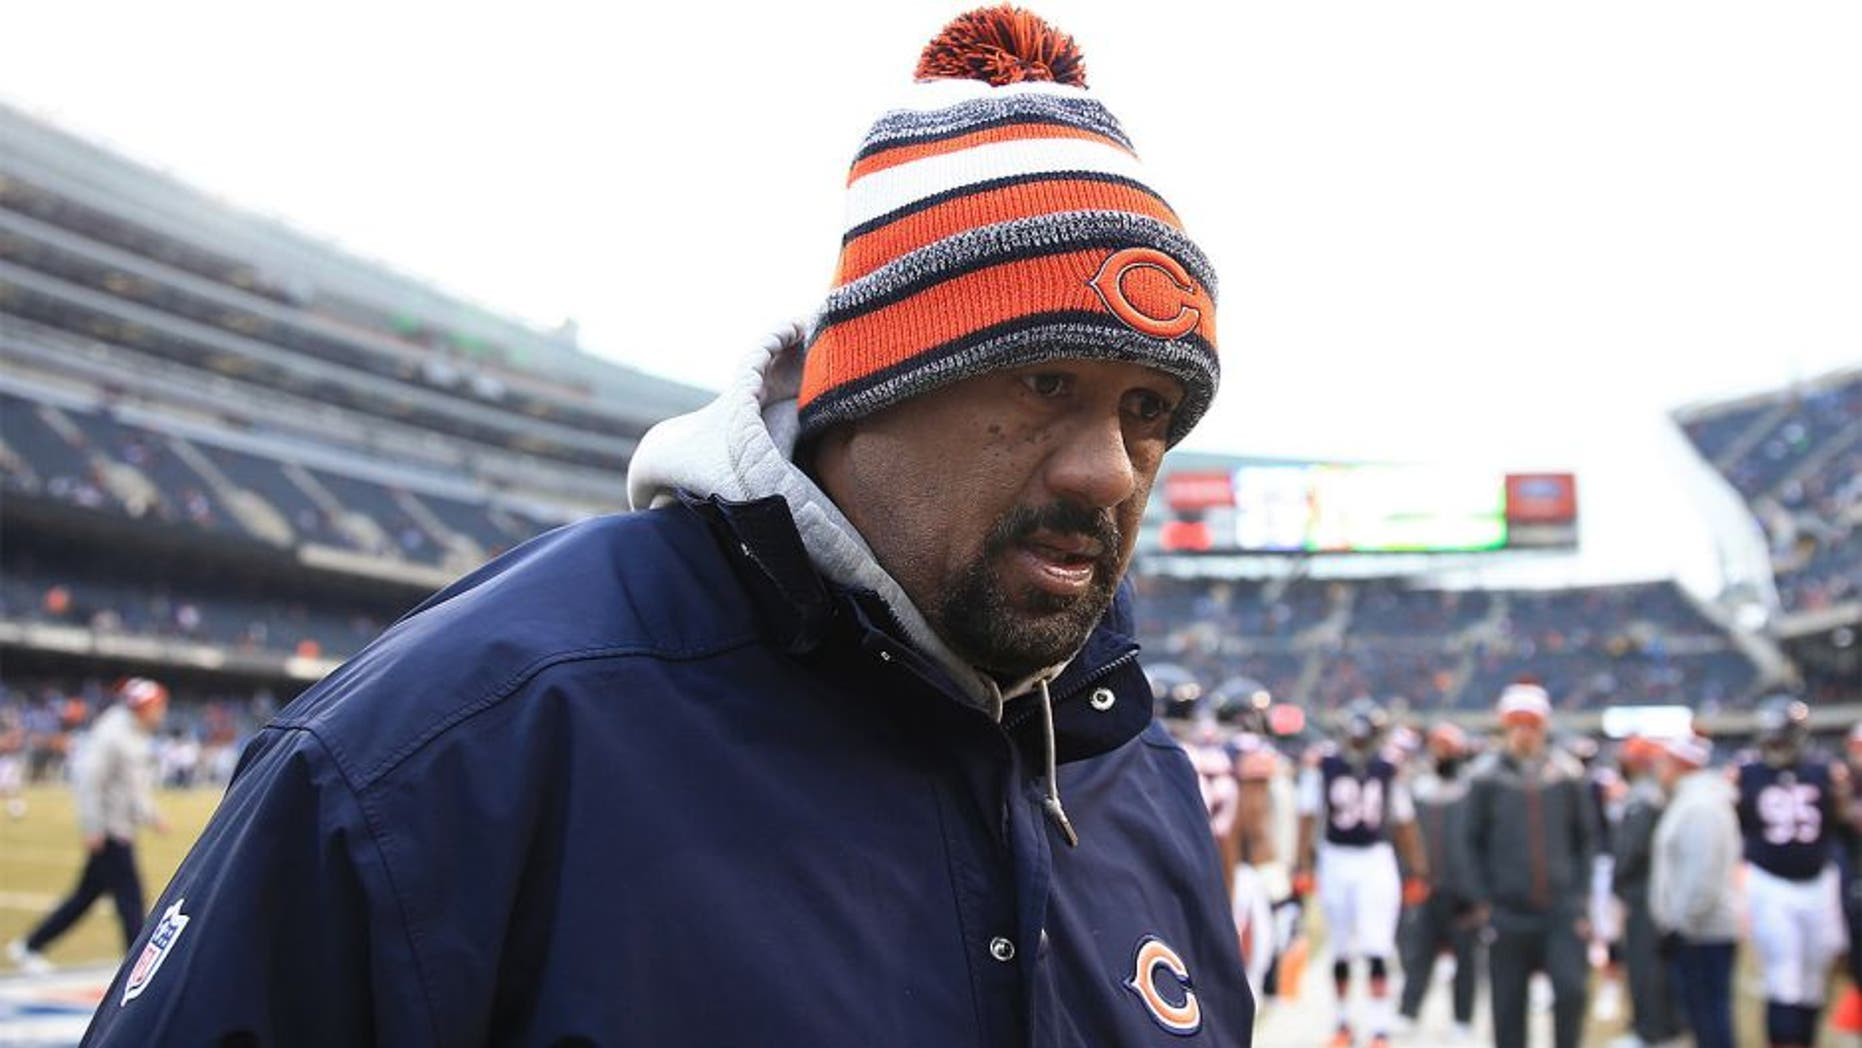 Dec 21, 2014; Chicago, IL, USA; Chicago Bears running back coach Skip Peete against the Detroit Lions at Soldier Field. The Lions defeated the Bears 20-14. Mandatory Credit: Andrew Weber-USA TODAY Sports